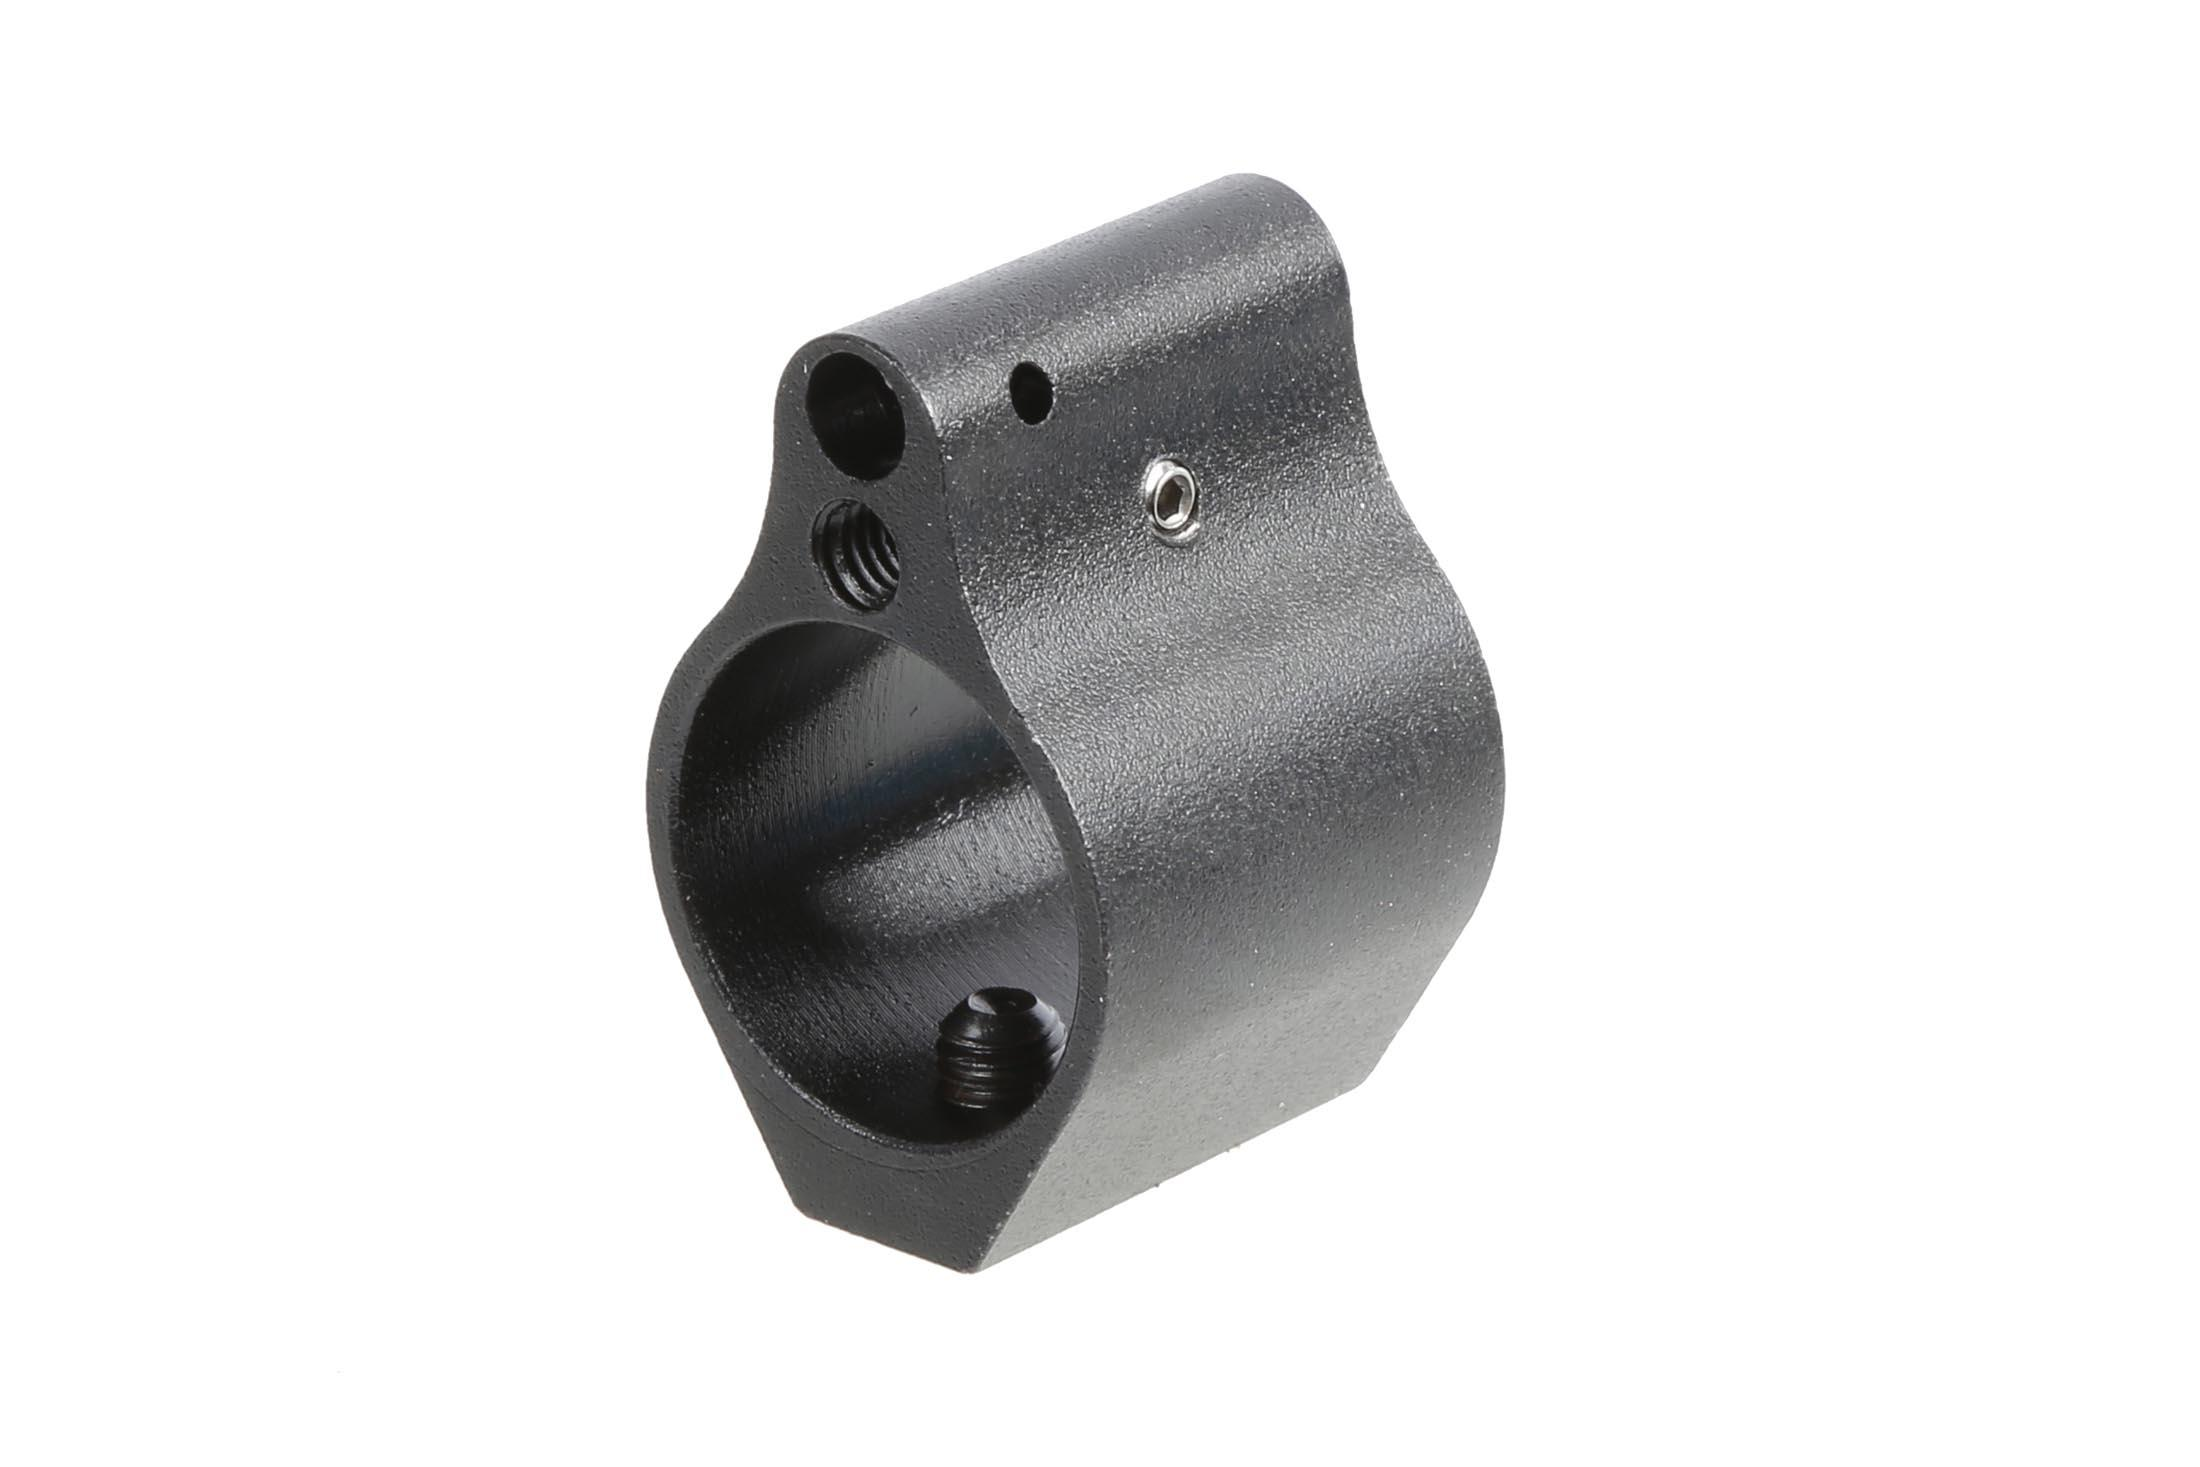 Radical Firearms Low Profile Adjustable Gas Block - .750 - Set Screw Style